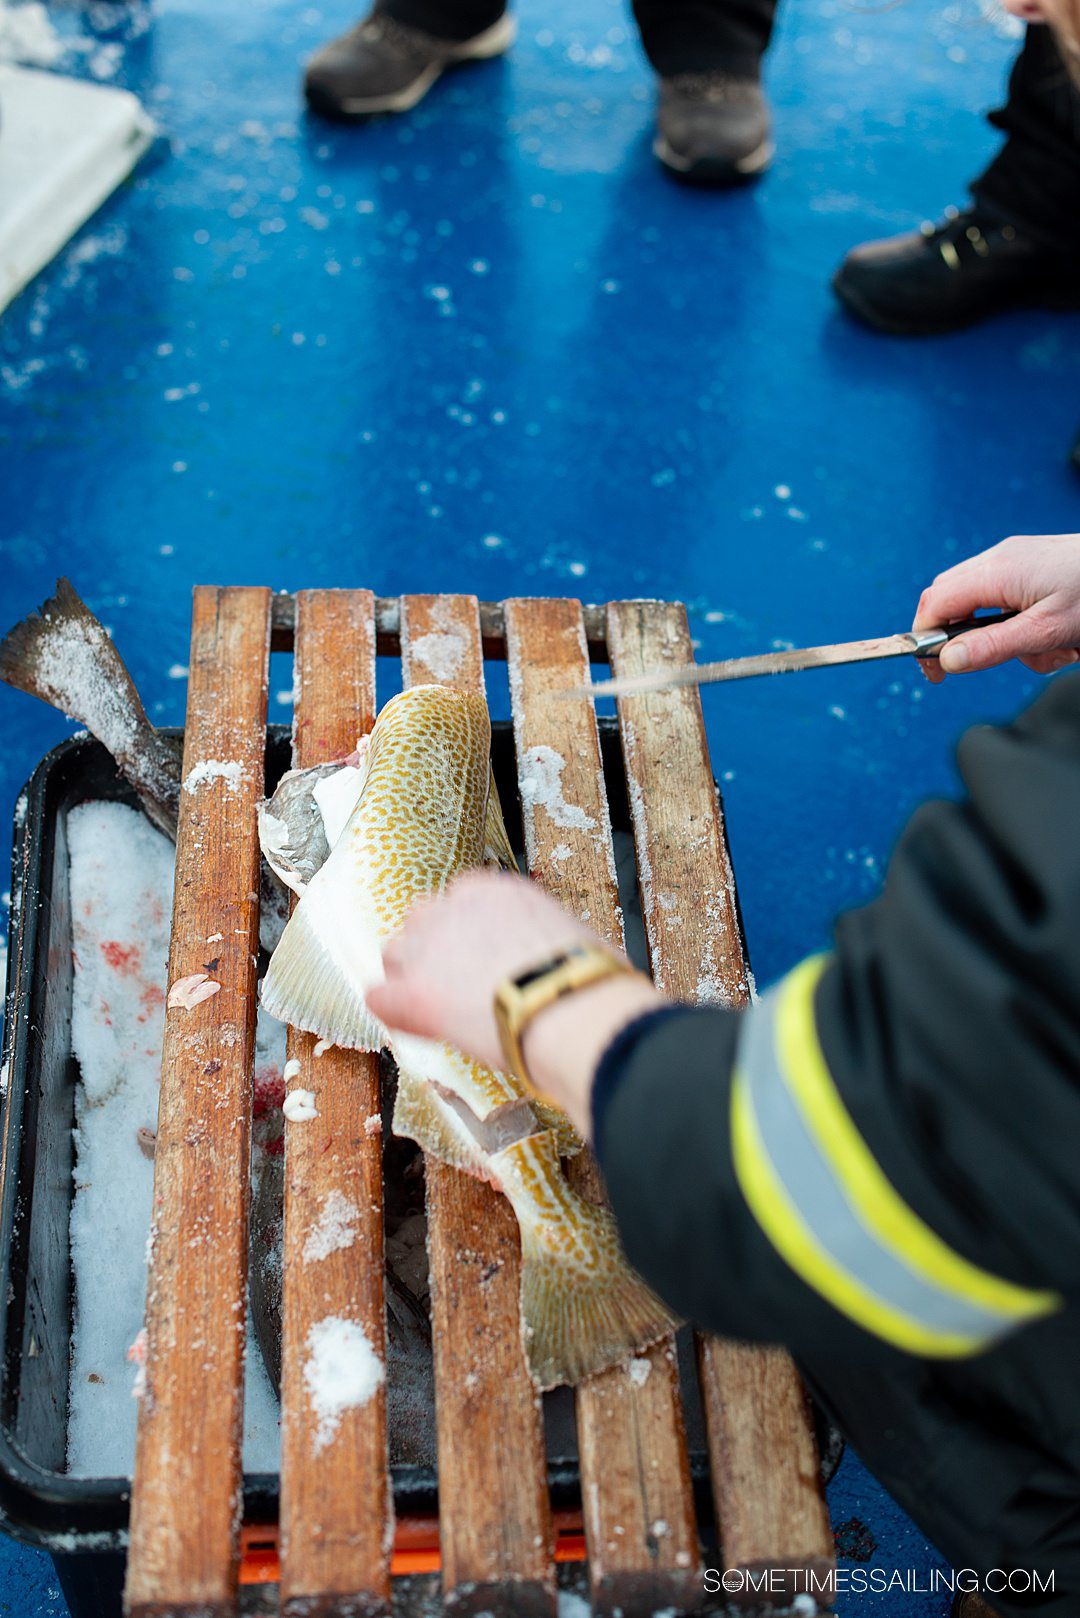 Gutting a fish on a polar fjord boat tour during winter in Tromso, Norway.